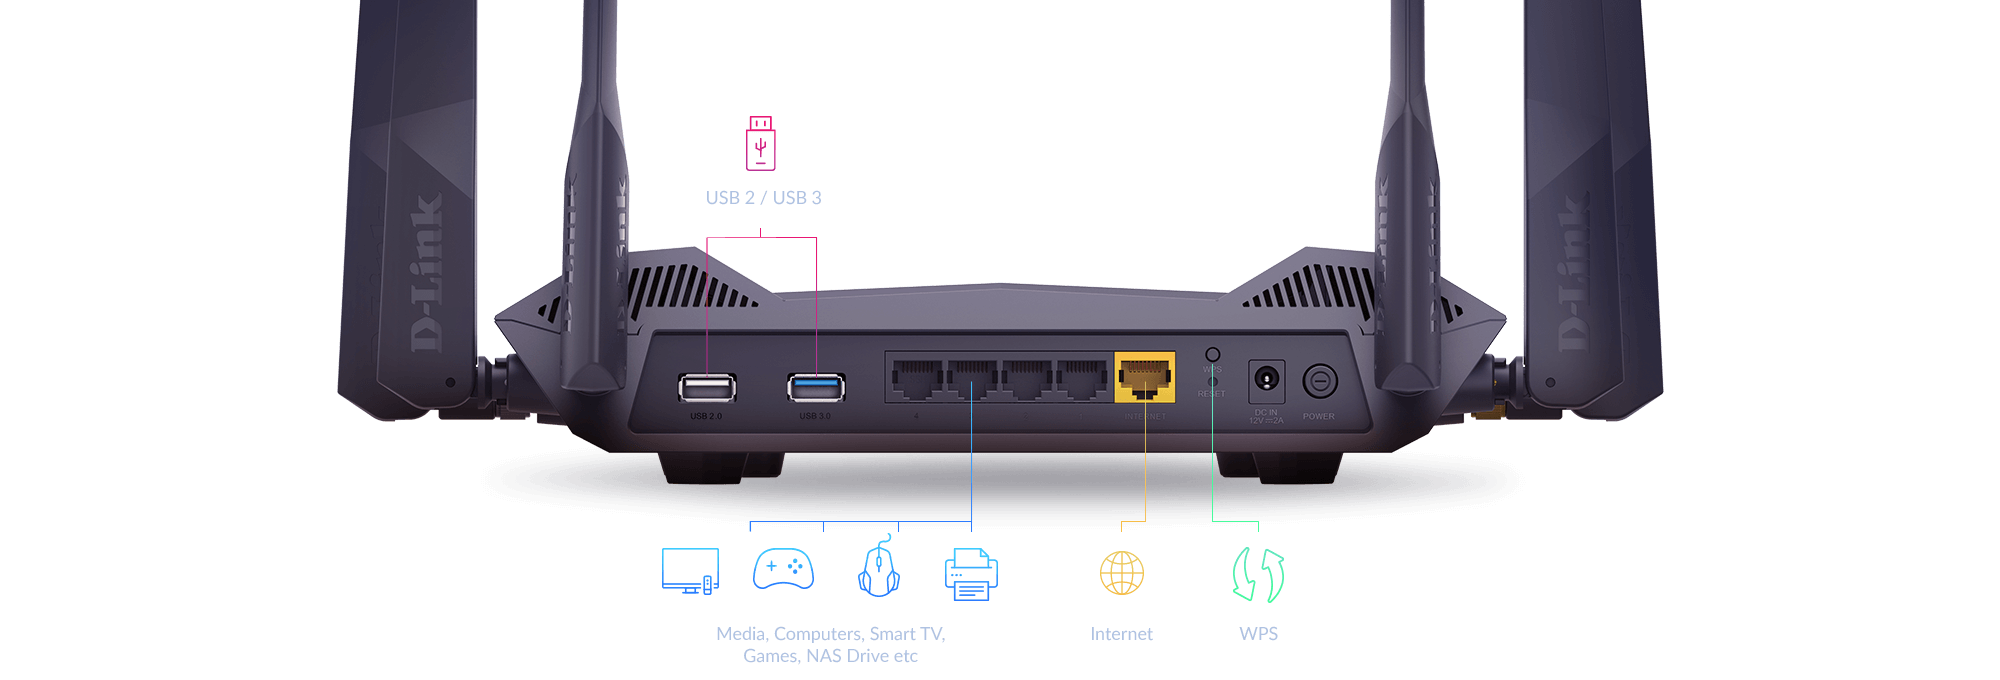 Diagram showing DIR-X546 AX5400 Wi-Fi 6 Router ports